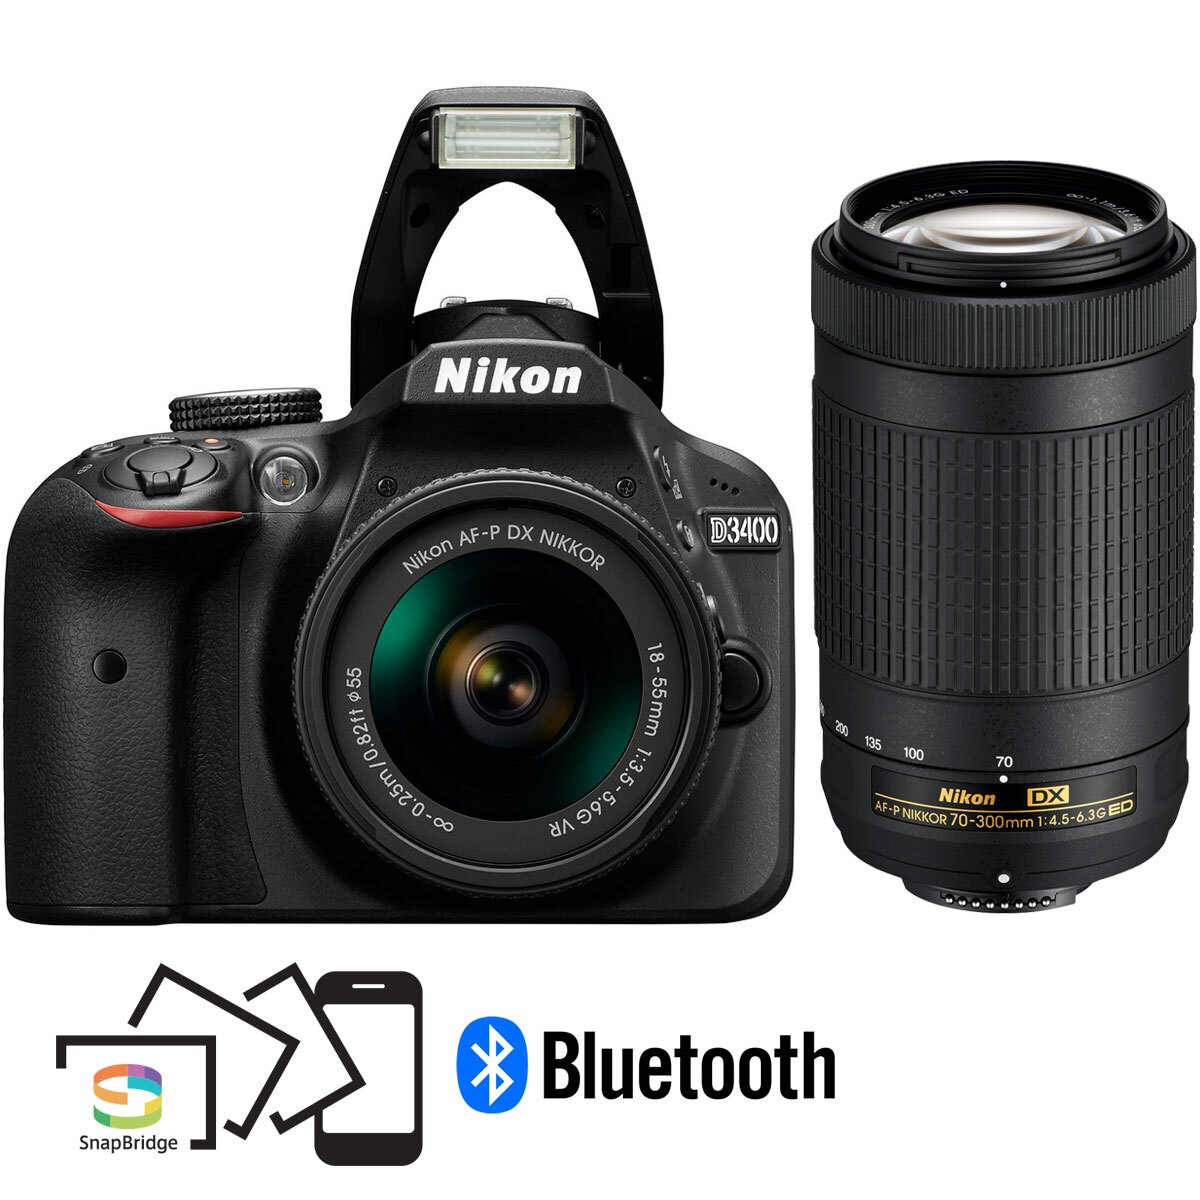 Nikon D3400 24.2MP Digital SLR Camera w/ AF-P 18-55mm VR & 70-300mm Dual Zoom Lens Kit 0